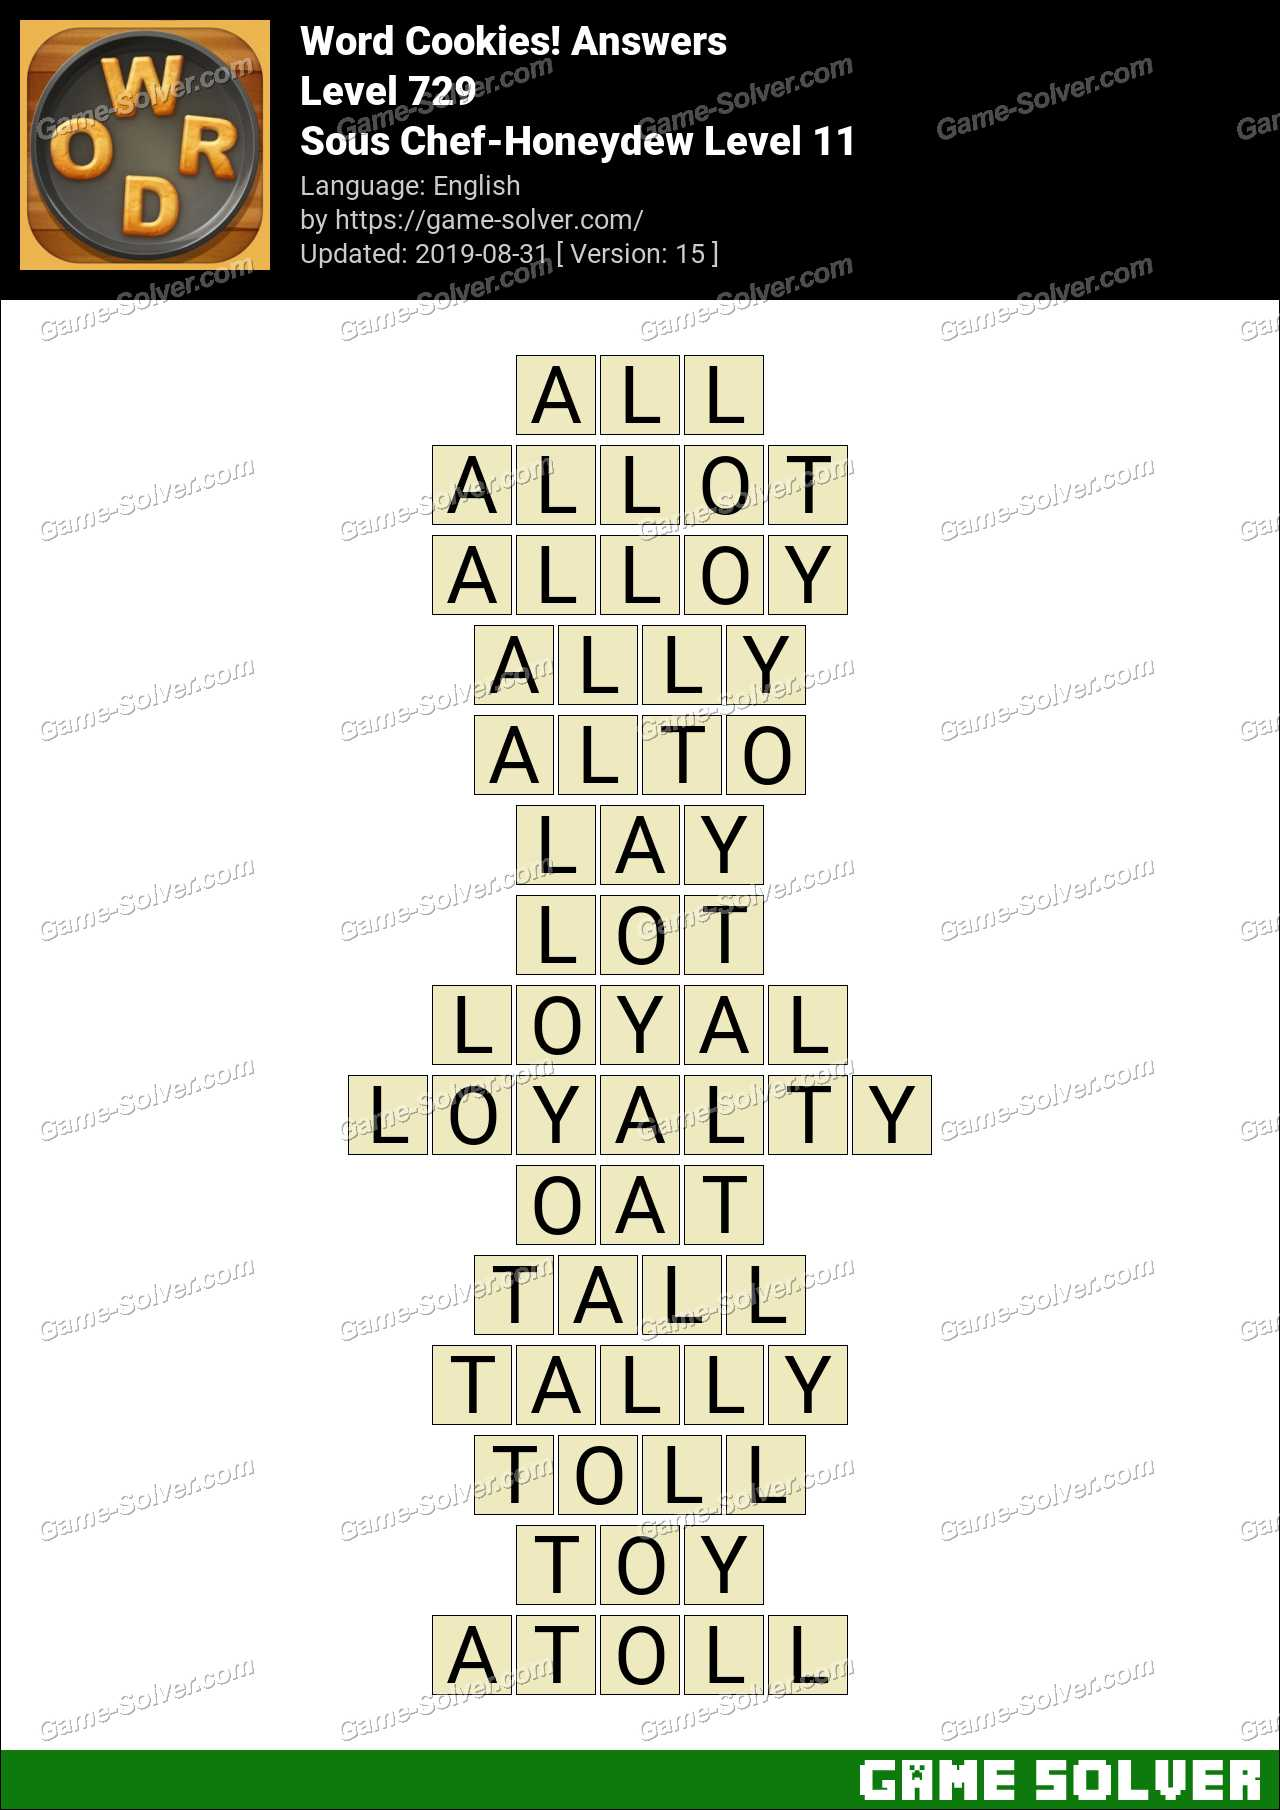 Word Cookies Sous Chef-Honeydew Level 11 Answers